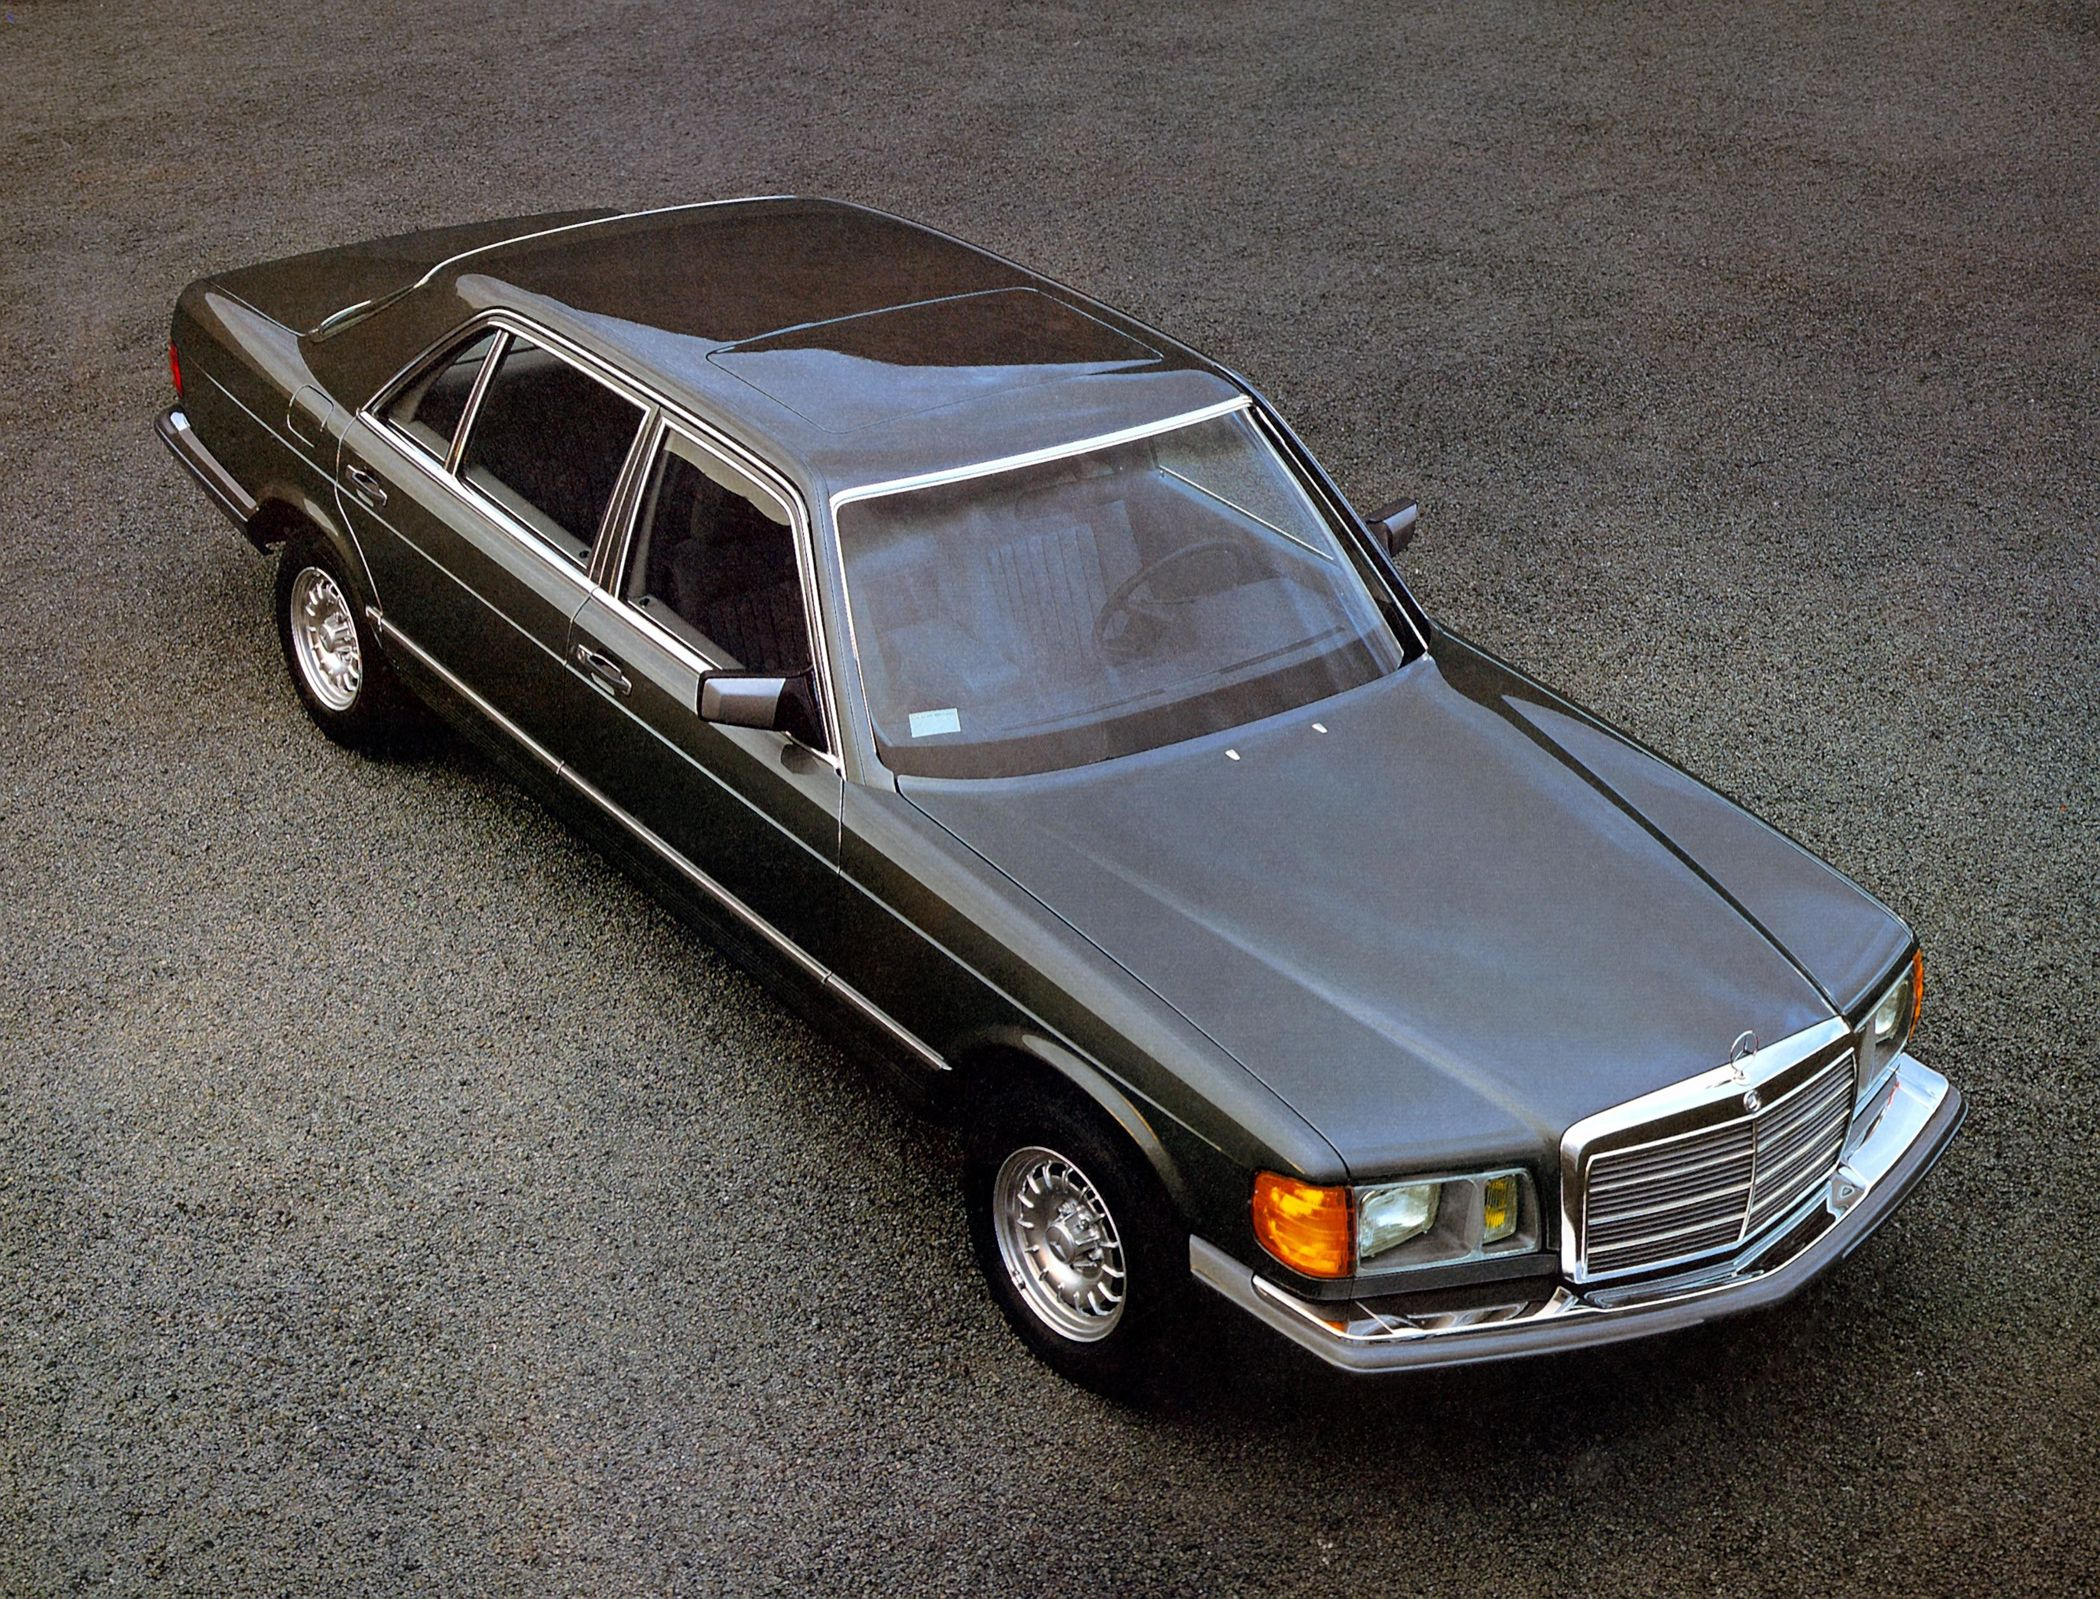 Mercedes-Benz S-klasse II (W126) 1979 - 1985 Coupe #3